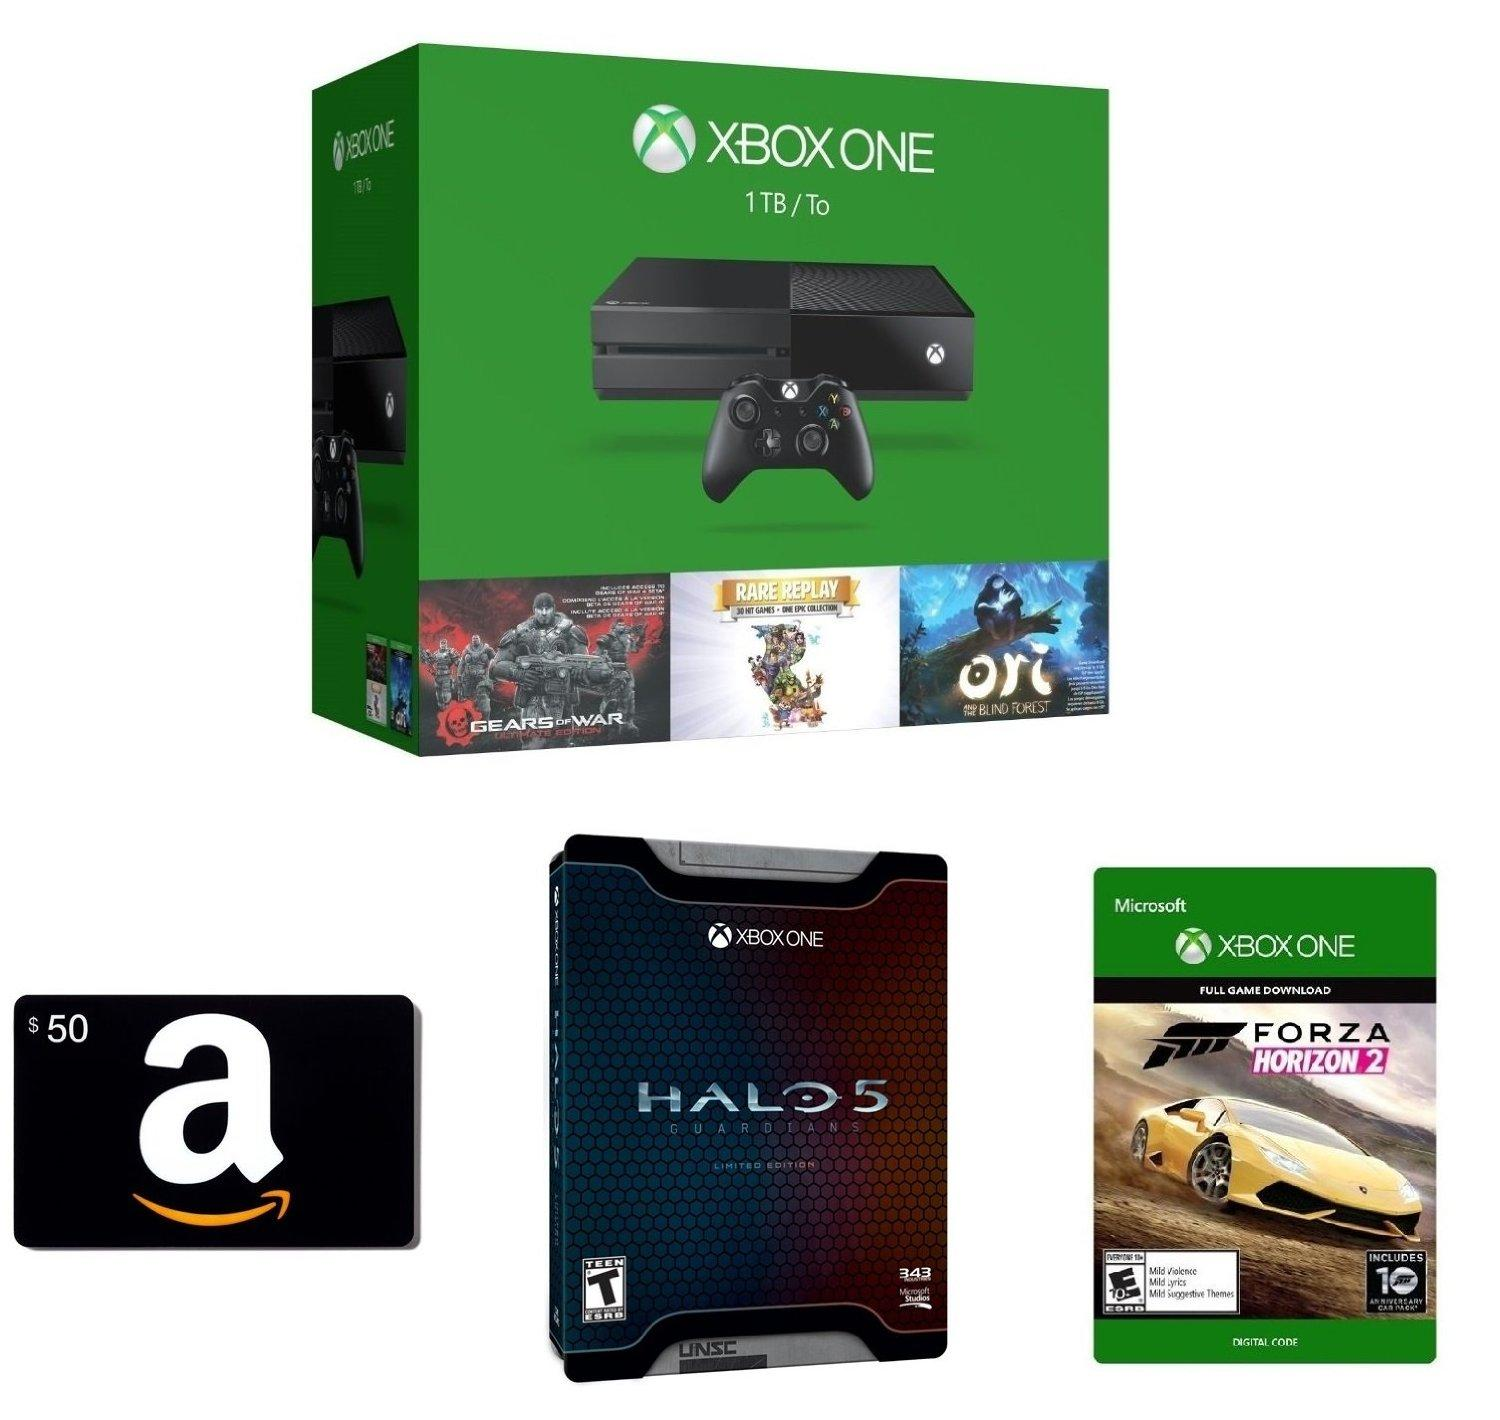 $369.00 Xbox One 1TB Console - 3 Games Holiday Bundle + Amazon.com $50 Gift Card (Physical Card) + Forza Horizon 2